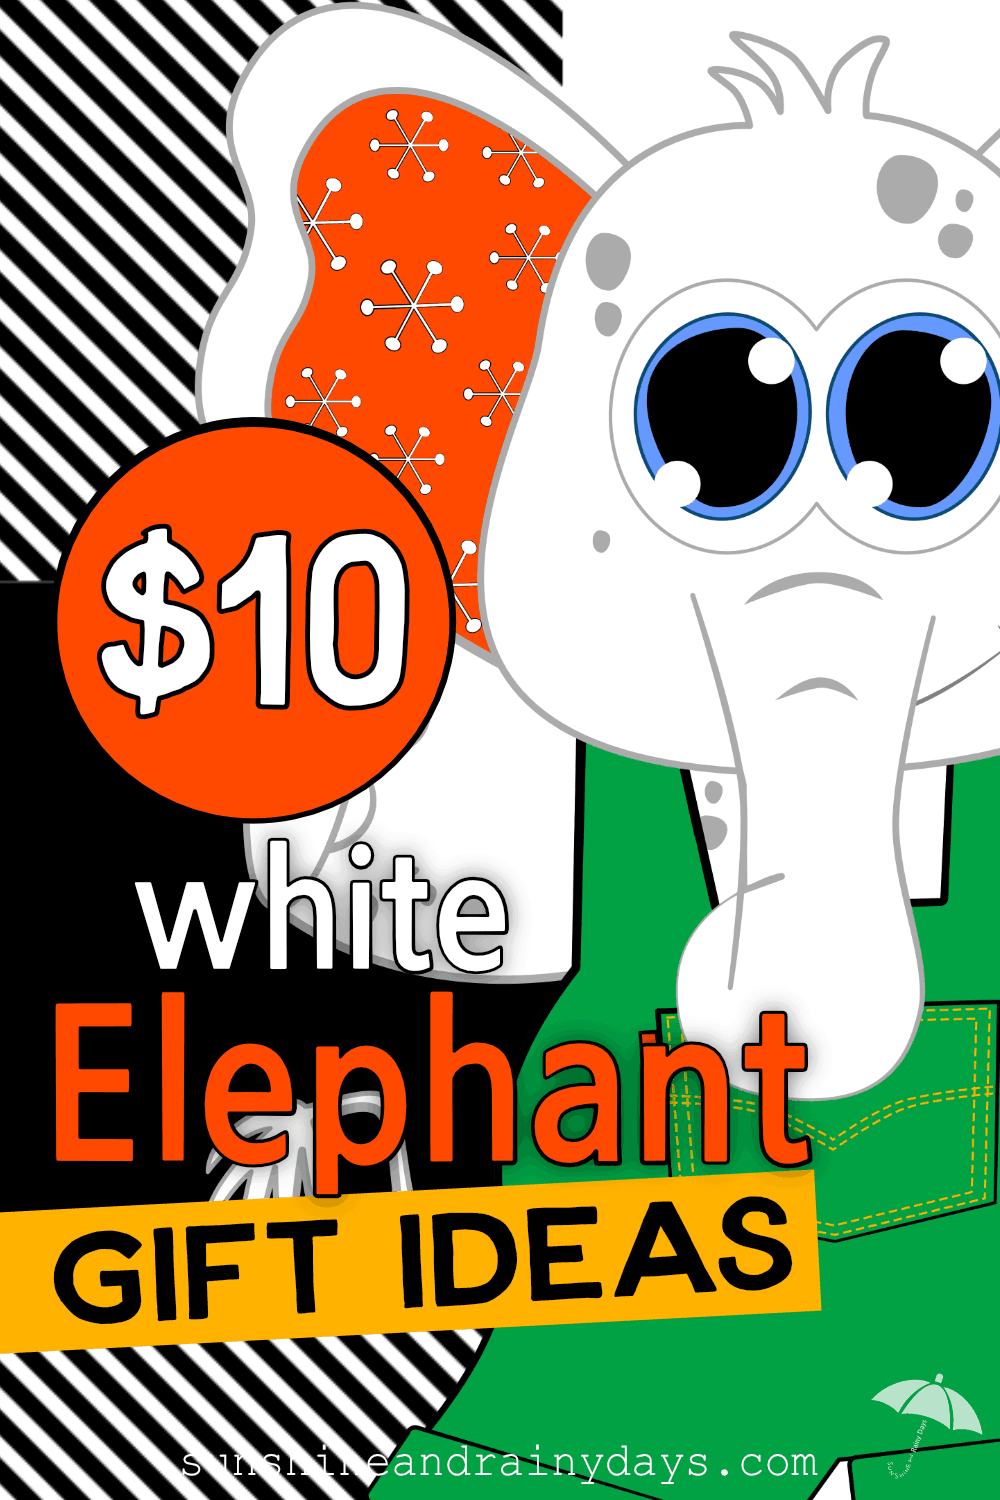 $10 White Elephant Gift Ideas